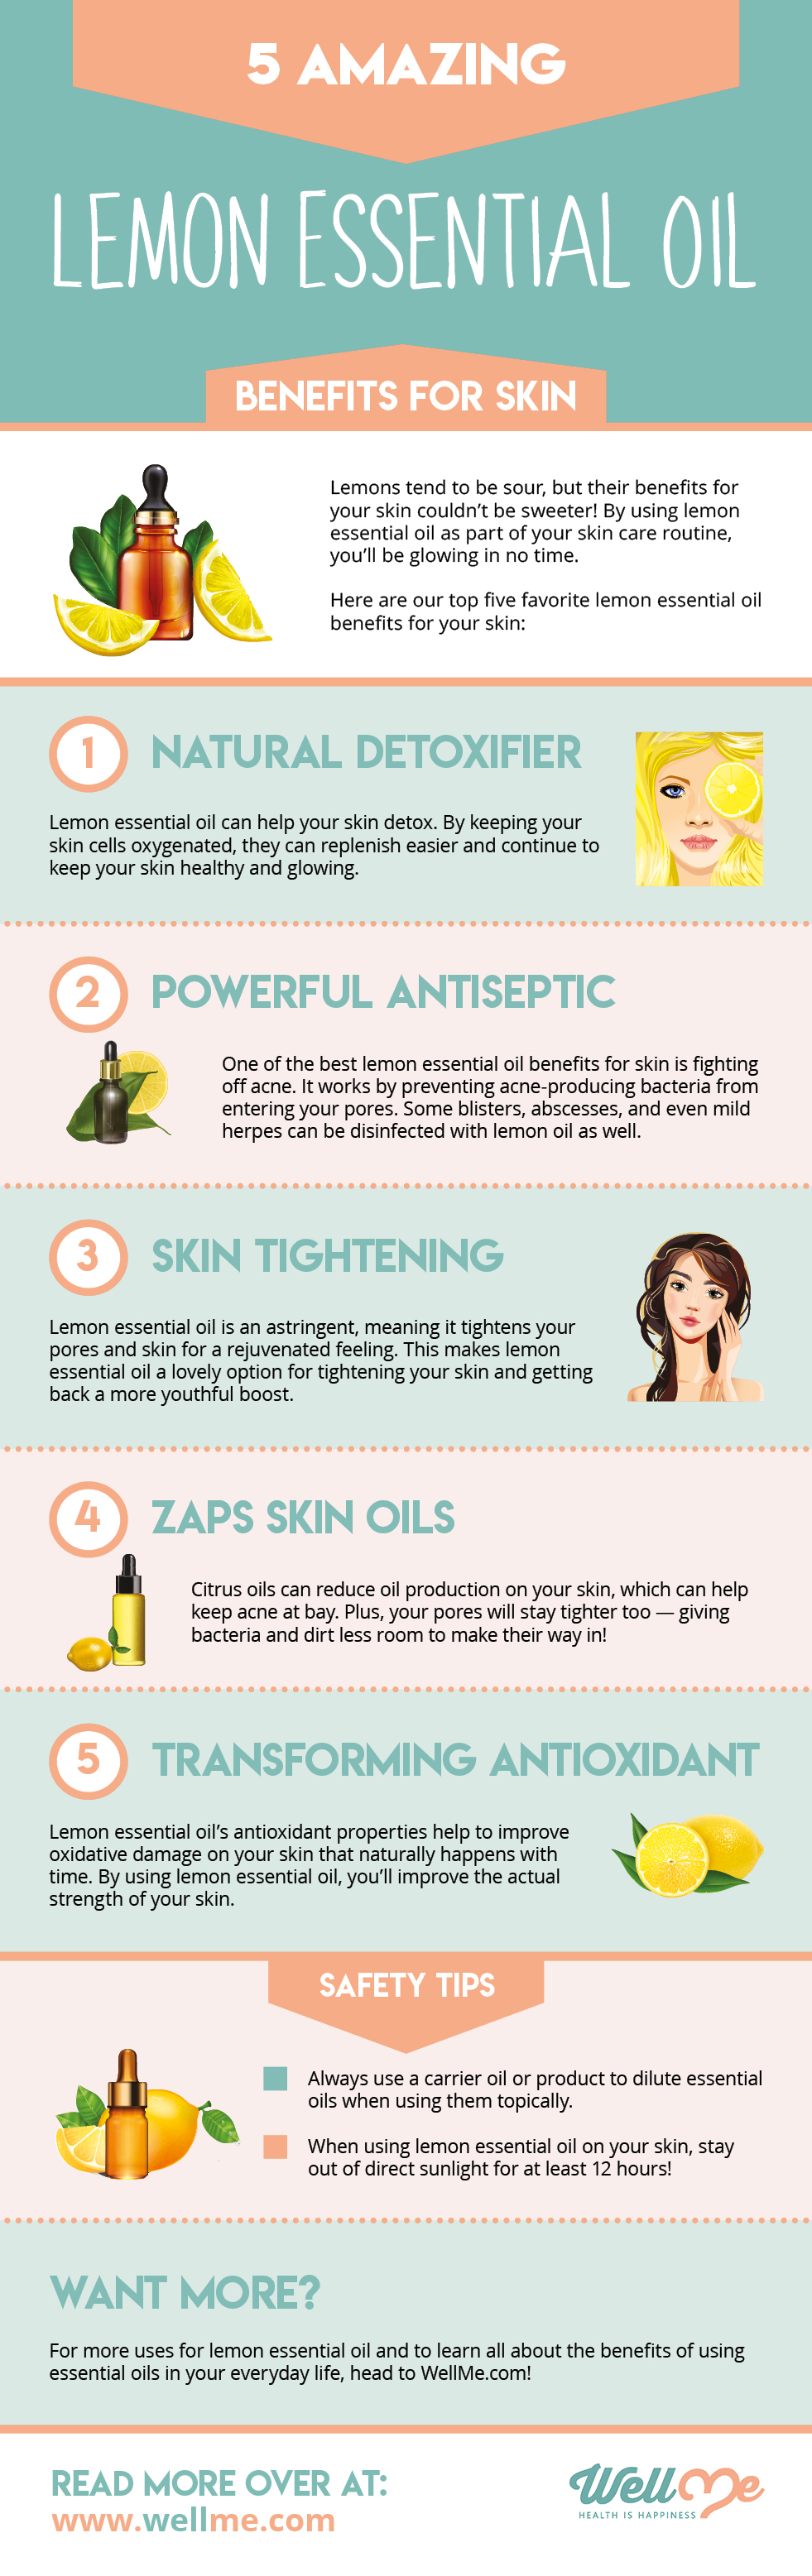 5 Amazing Lemon Essential Oil Benefits for Skin infographic